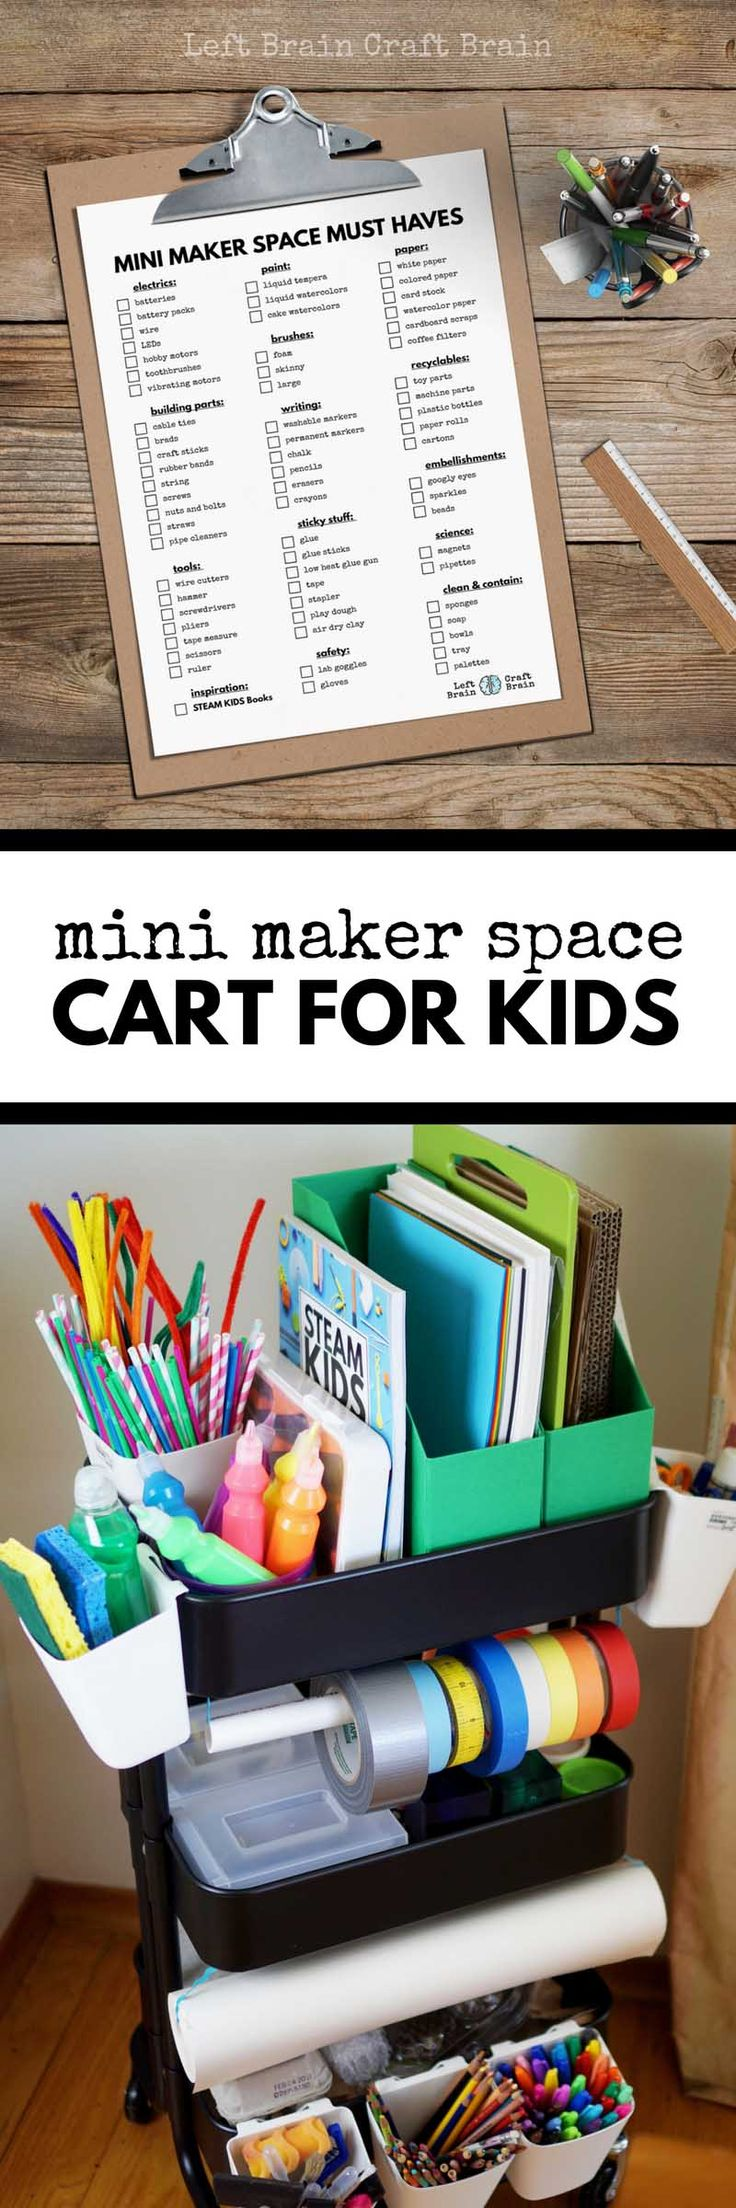 Use this helpful checklist to create a Mini Maker Space Cart for Kids filled with STEM & STEAM projects like circuits, art, and tinkering. #ad #ScrubMyWay #TeamSponge